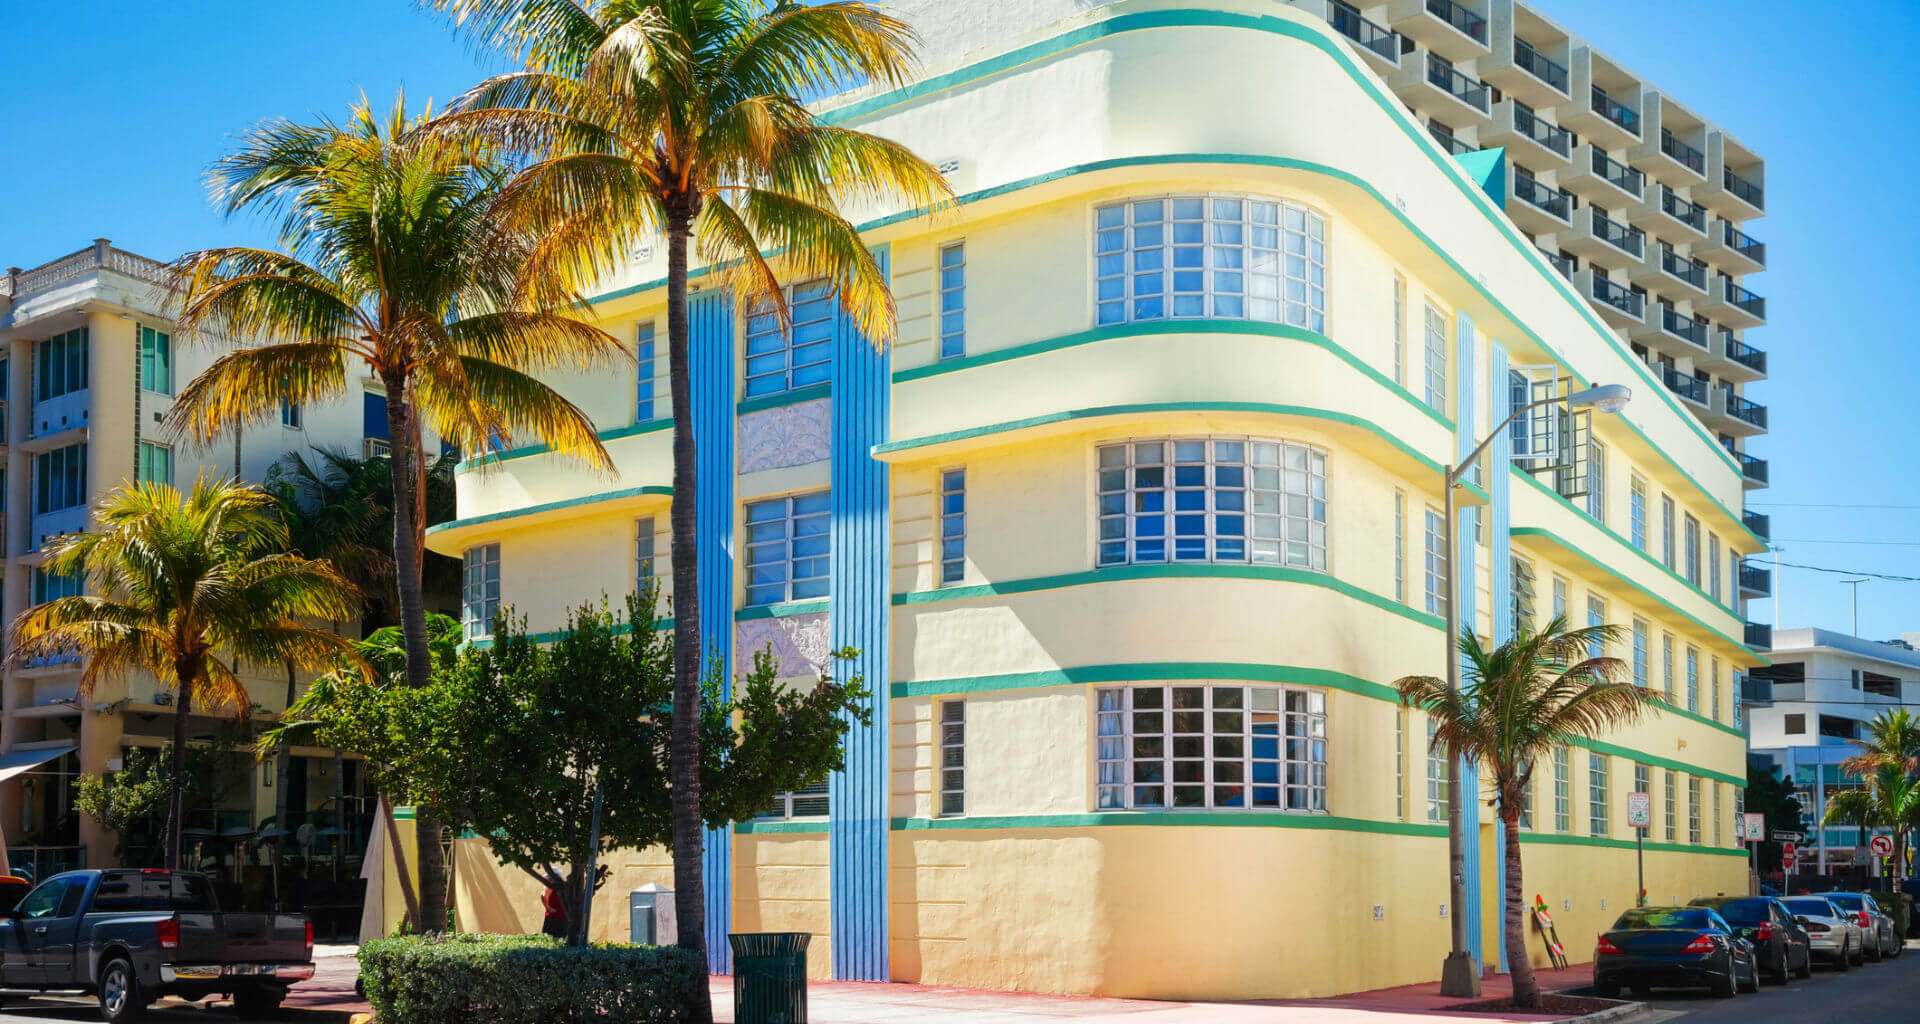 edificio art deco miami